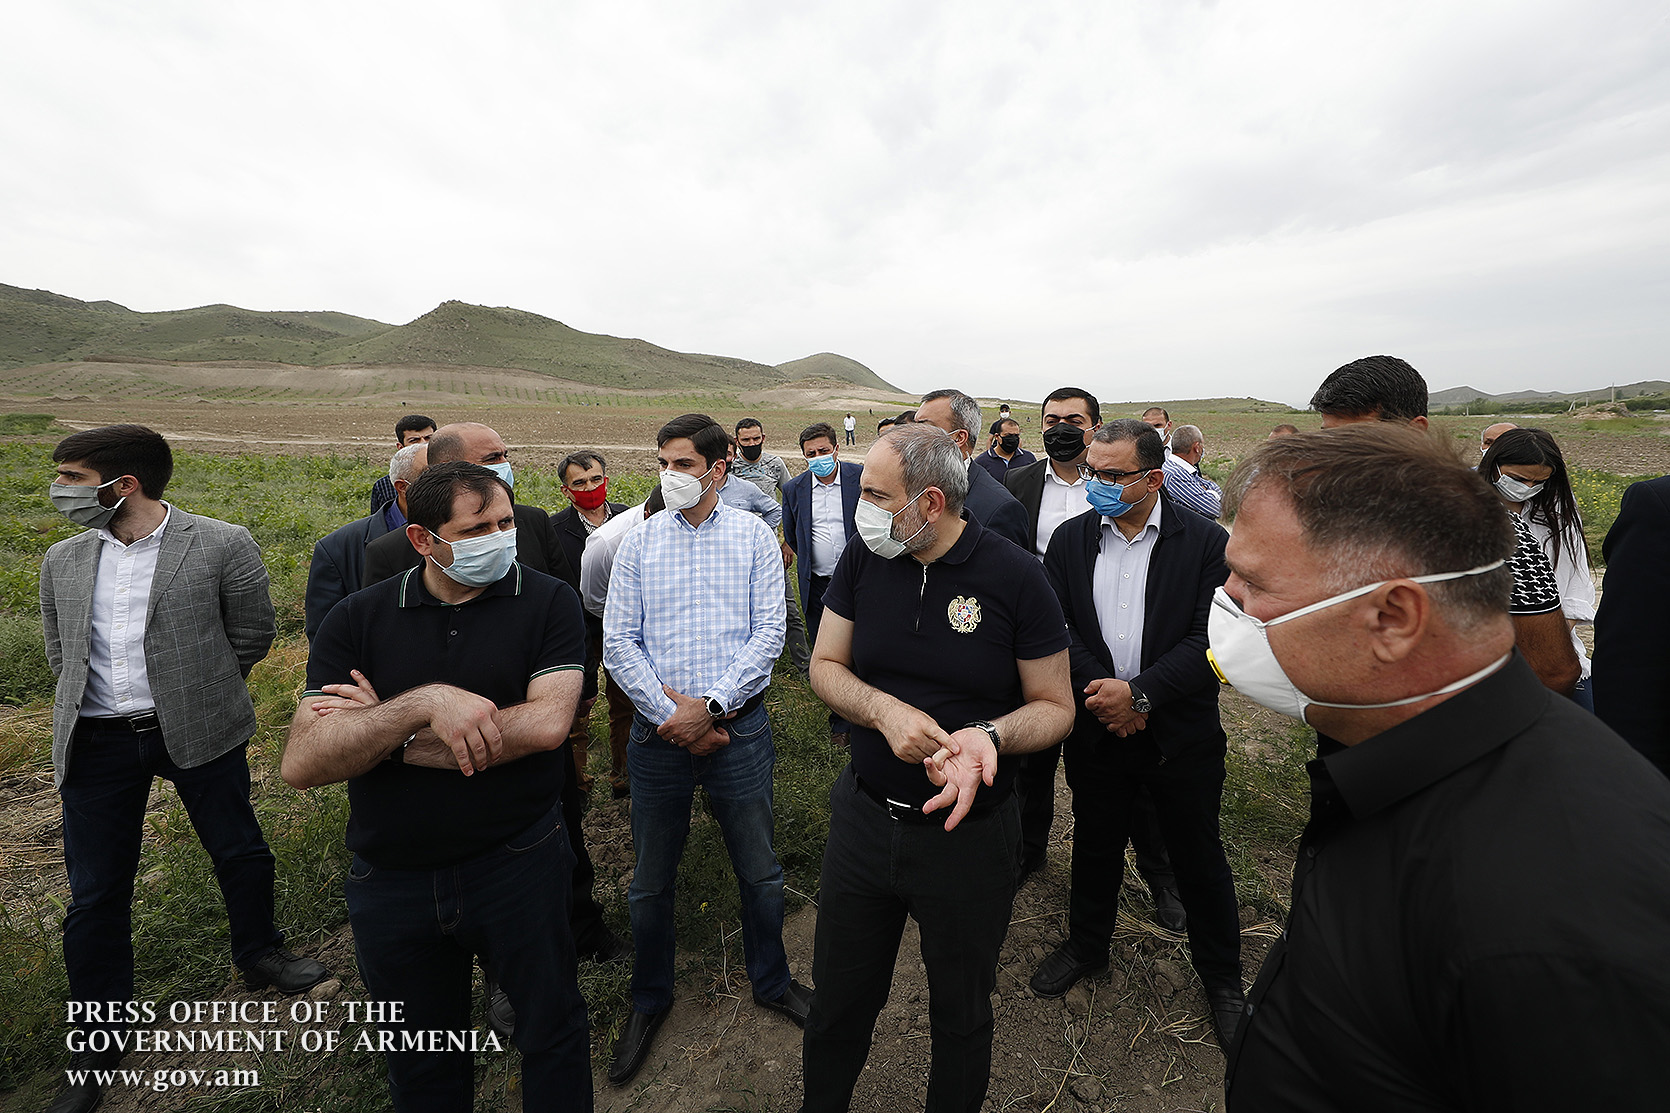 PM visits farmers in Narek community